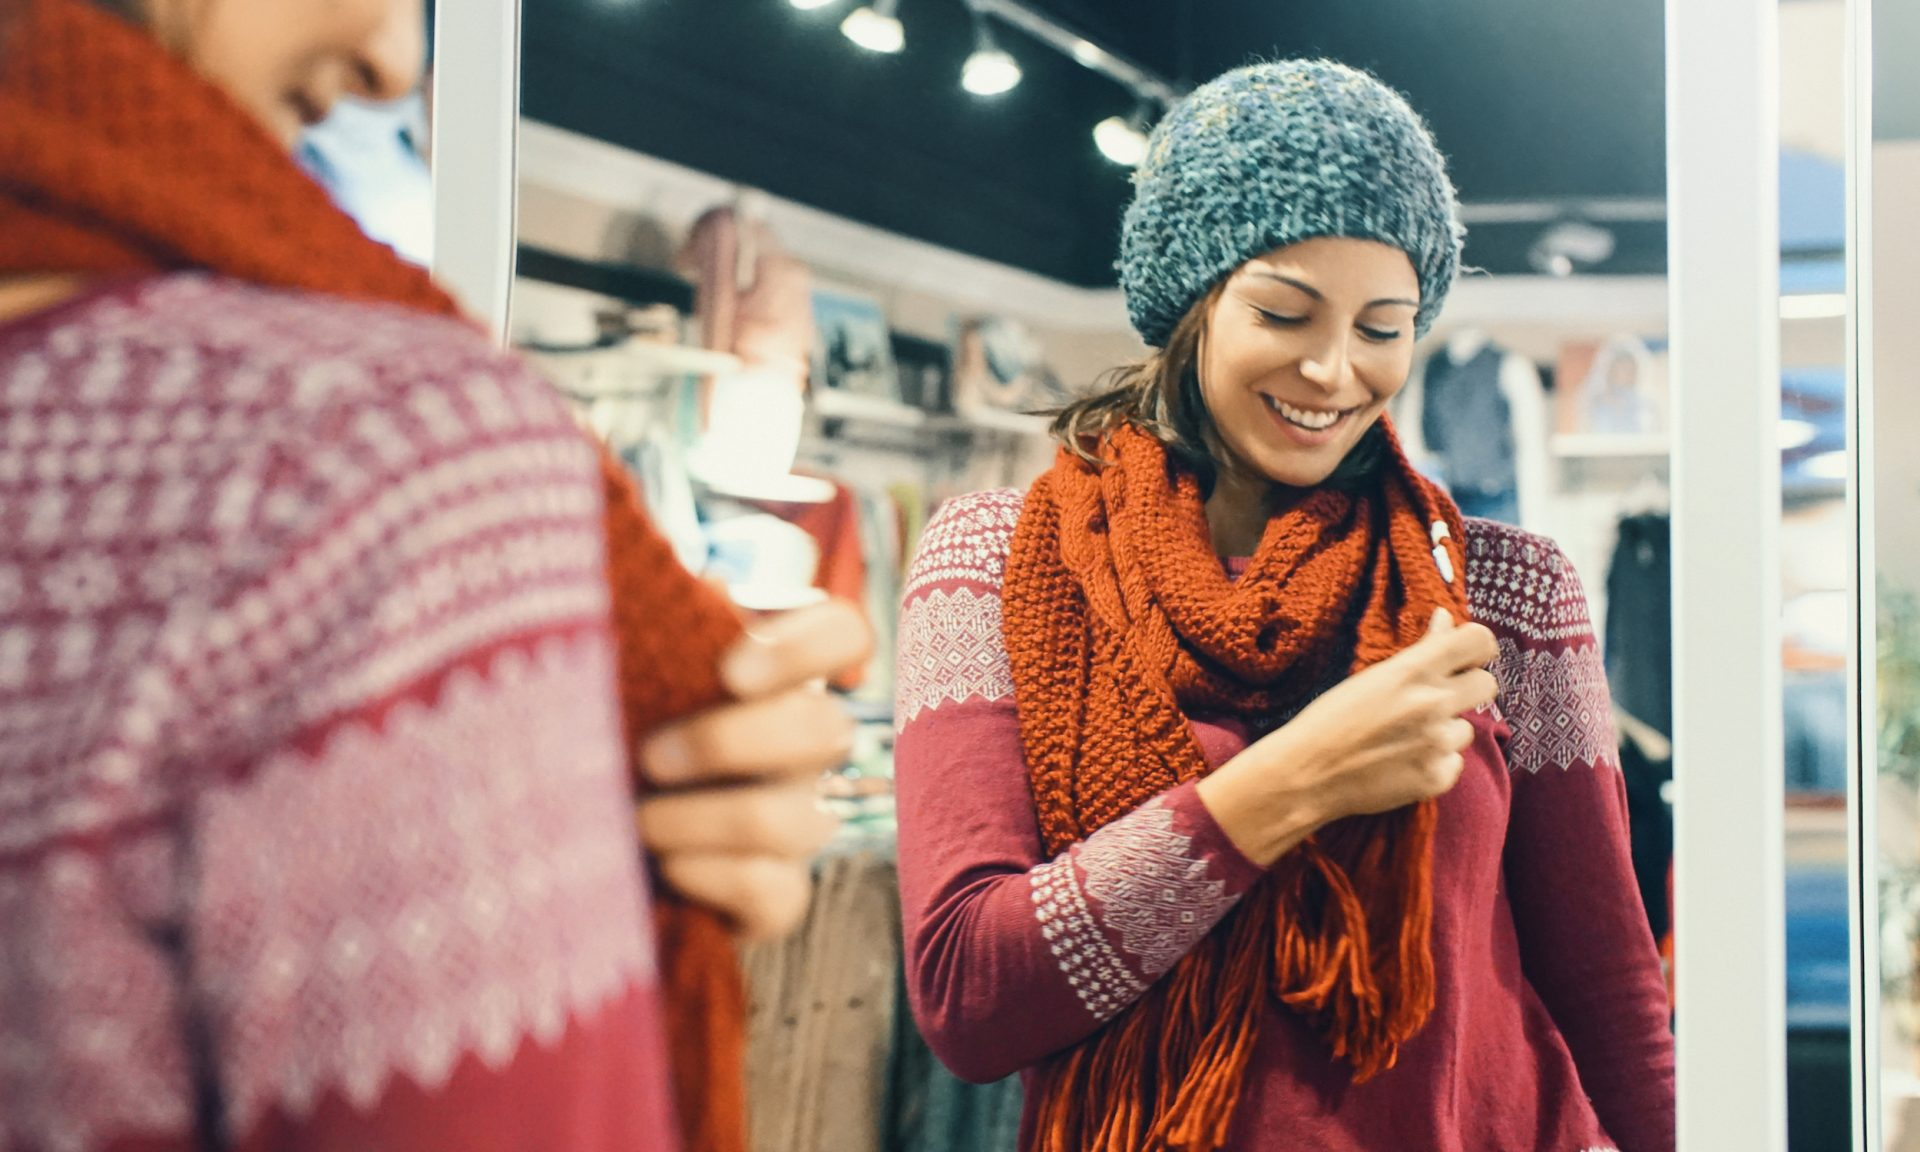 fb8f3cce7dc How to Shop for Used Clothes — and Why You Should - NerdWallet